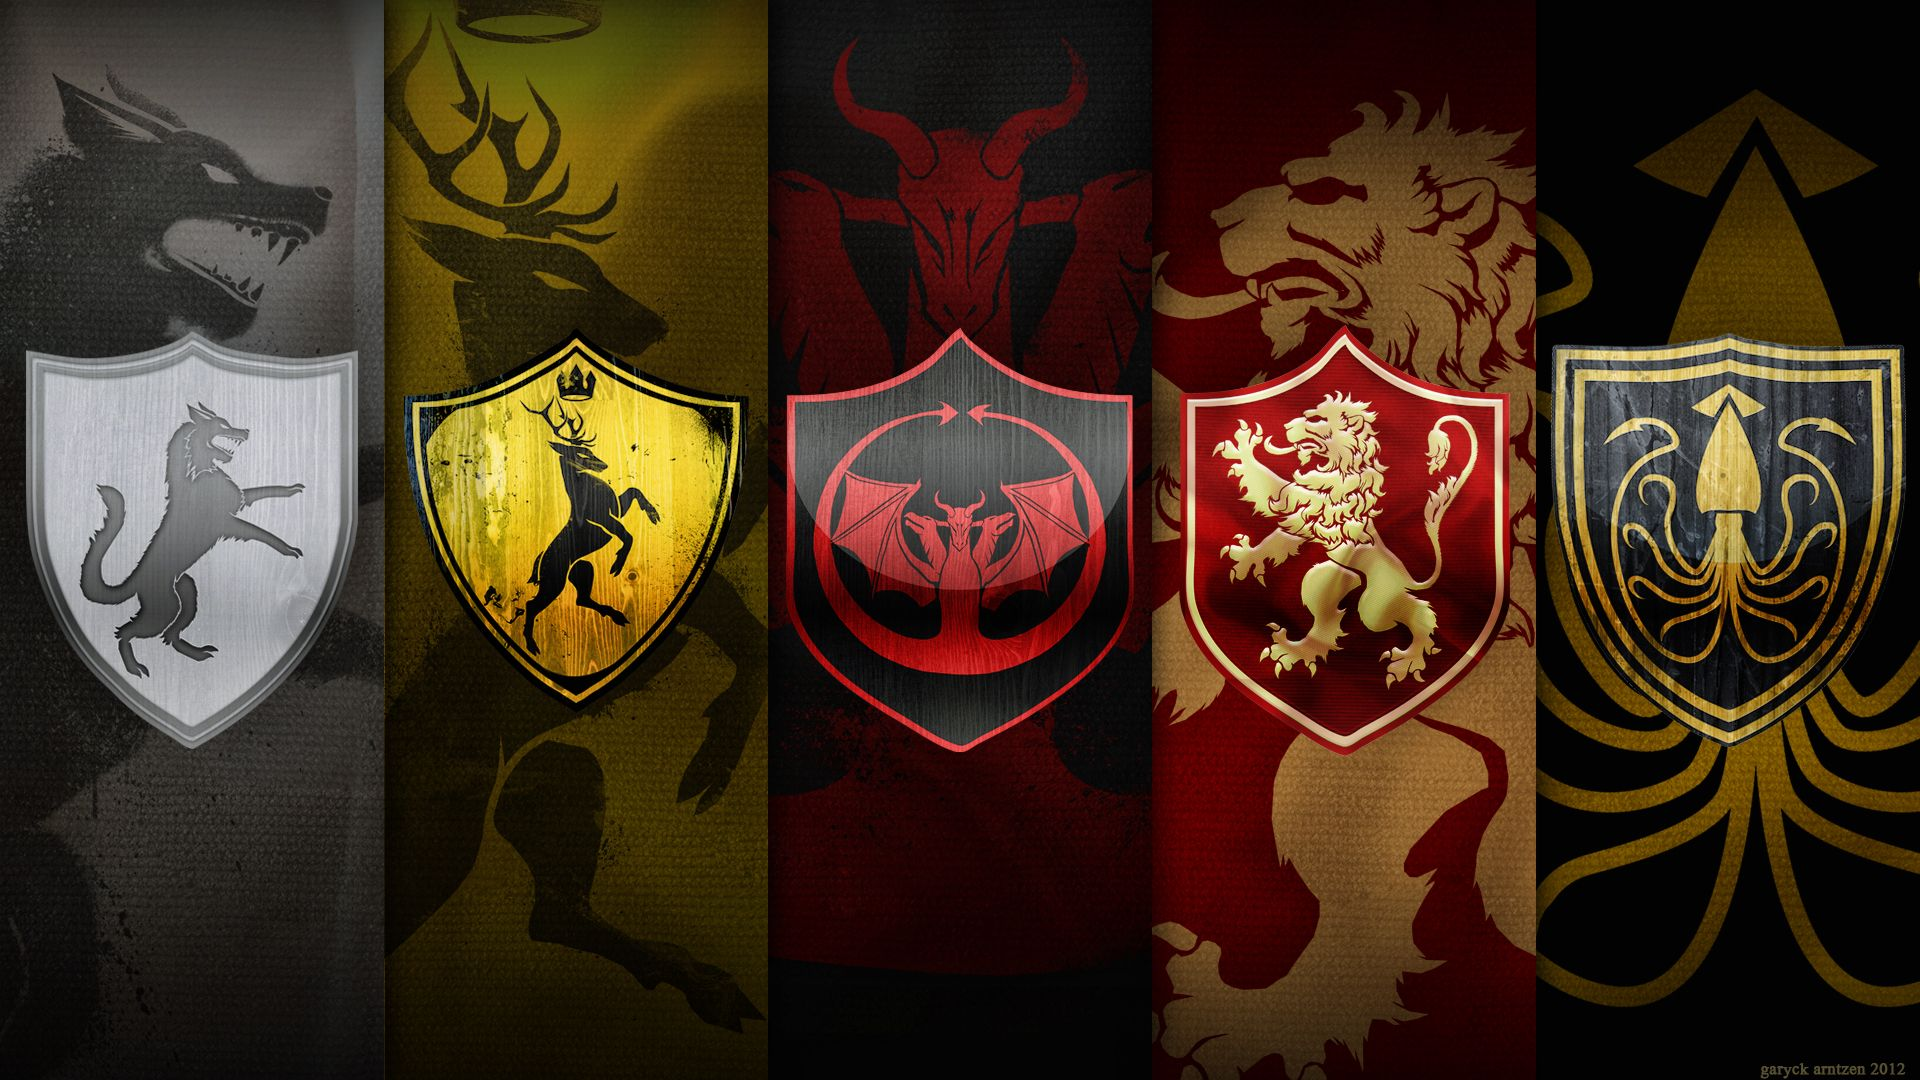 game of thrones wallpaper http://news.trestons/2016/01/23/game